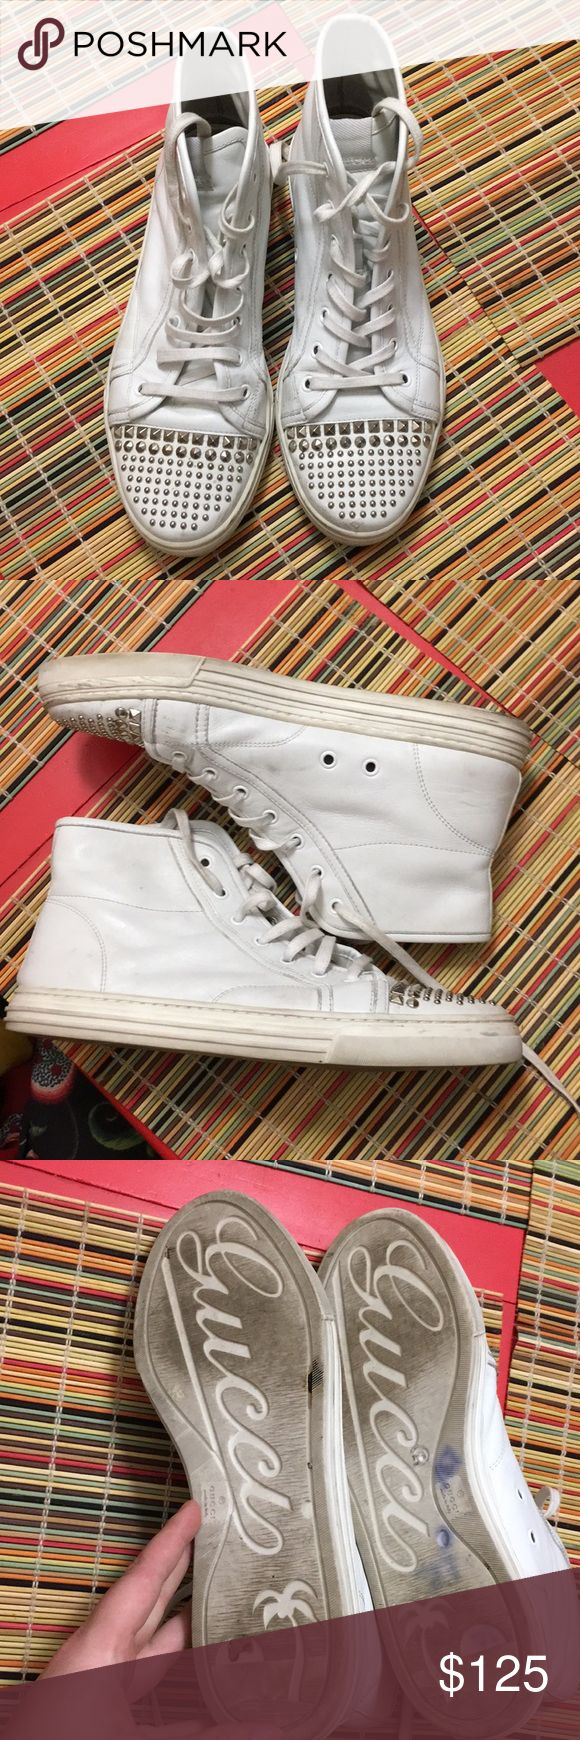 Gucci California sneakers size 40 Gently worn Gucci California hi top sneakers size 40. These are gently worn so please look through the photos. Price is negotiable. No studs are missing from the toes as well. Gucci Shoes Sneakers